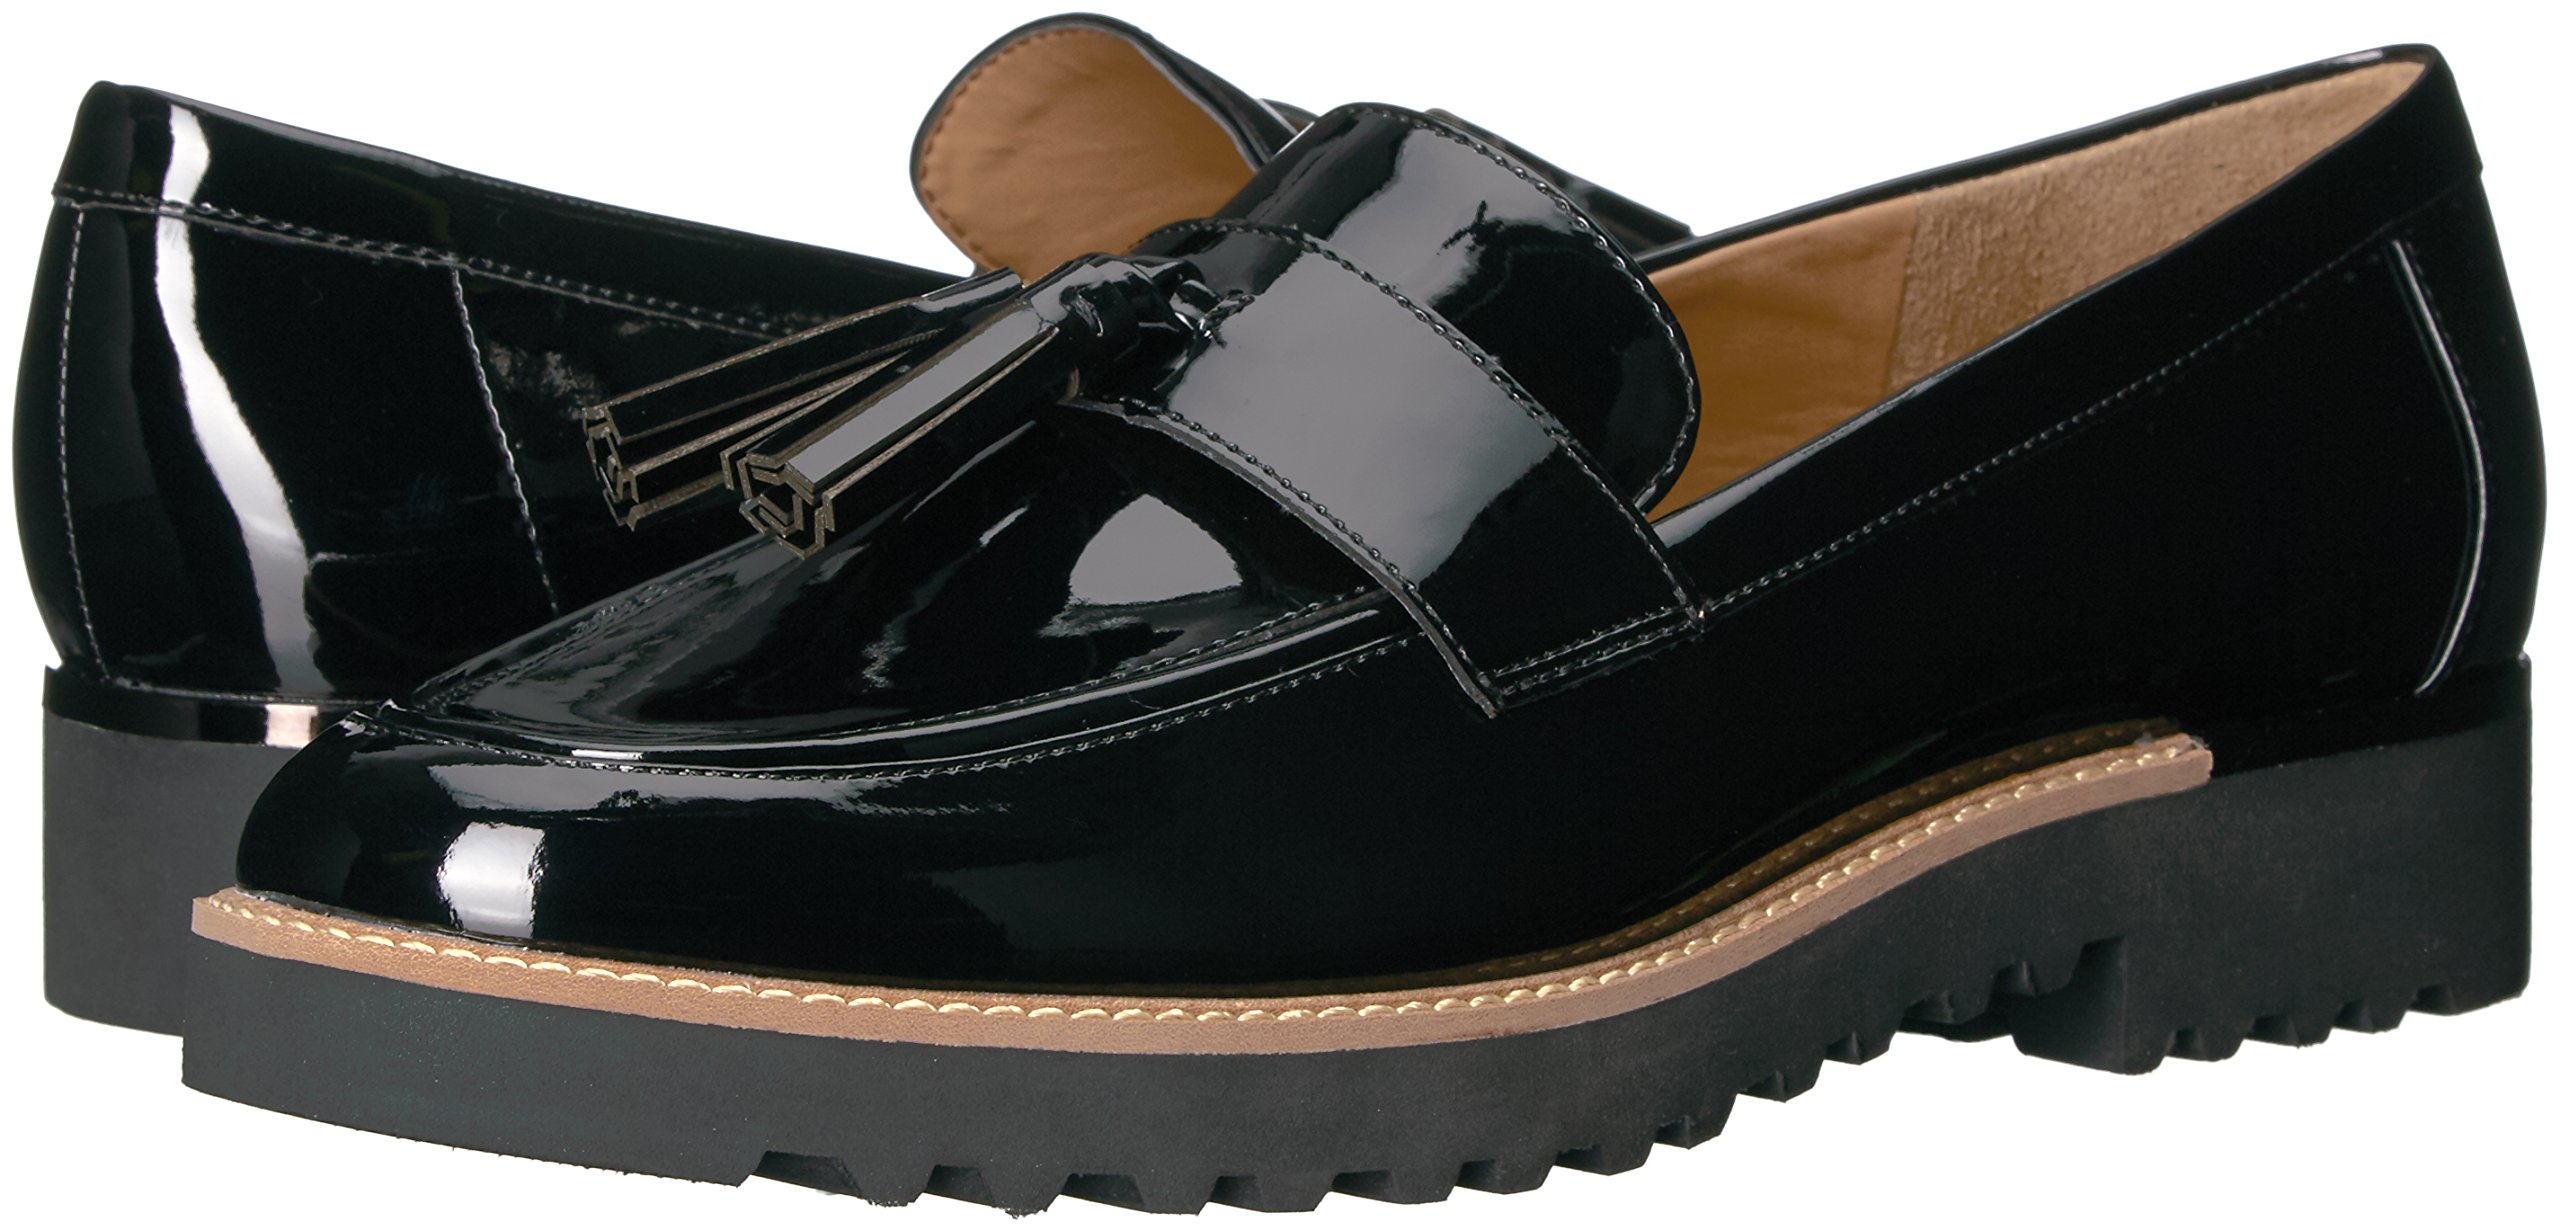 Franco Sarto Women's Carolynn Loafer Flat, Black, 9 M US by Franco Sarto (Image #6)